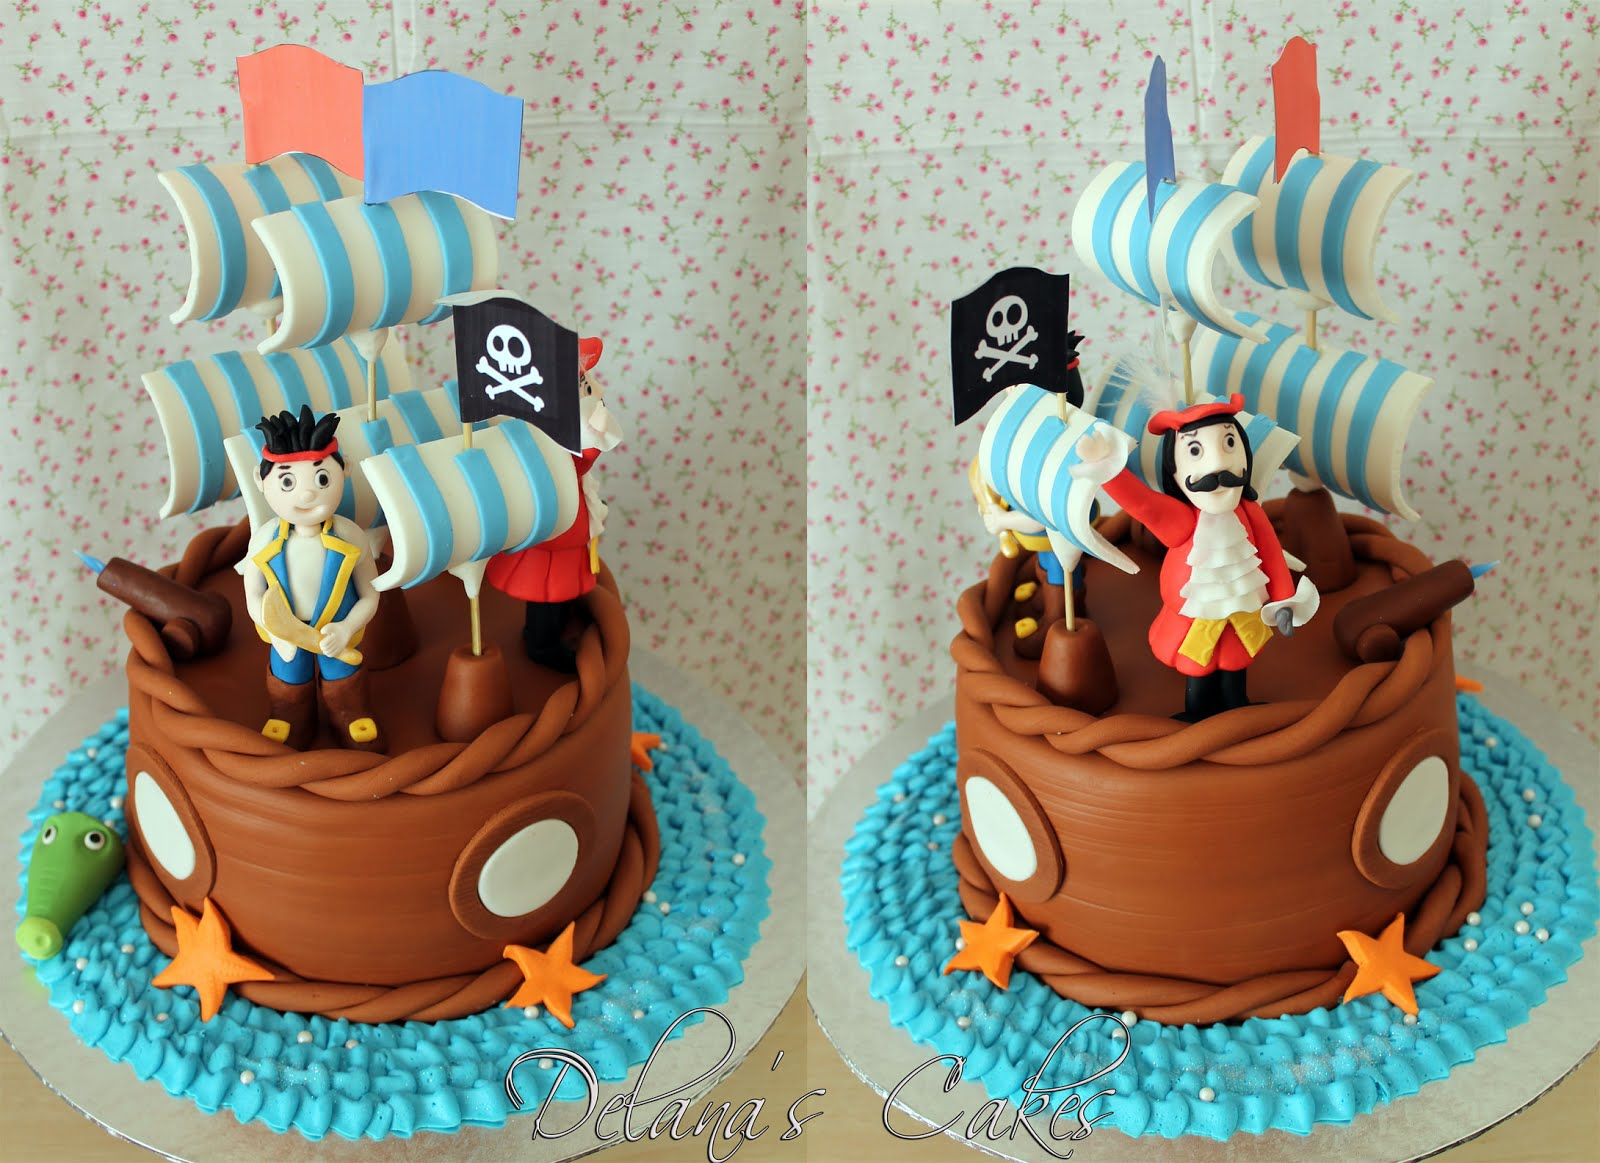 jake and the neverland pirates cake delana s cakes jake and the neverland cake 5217